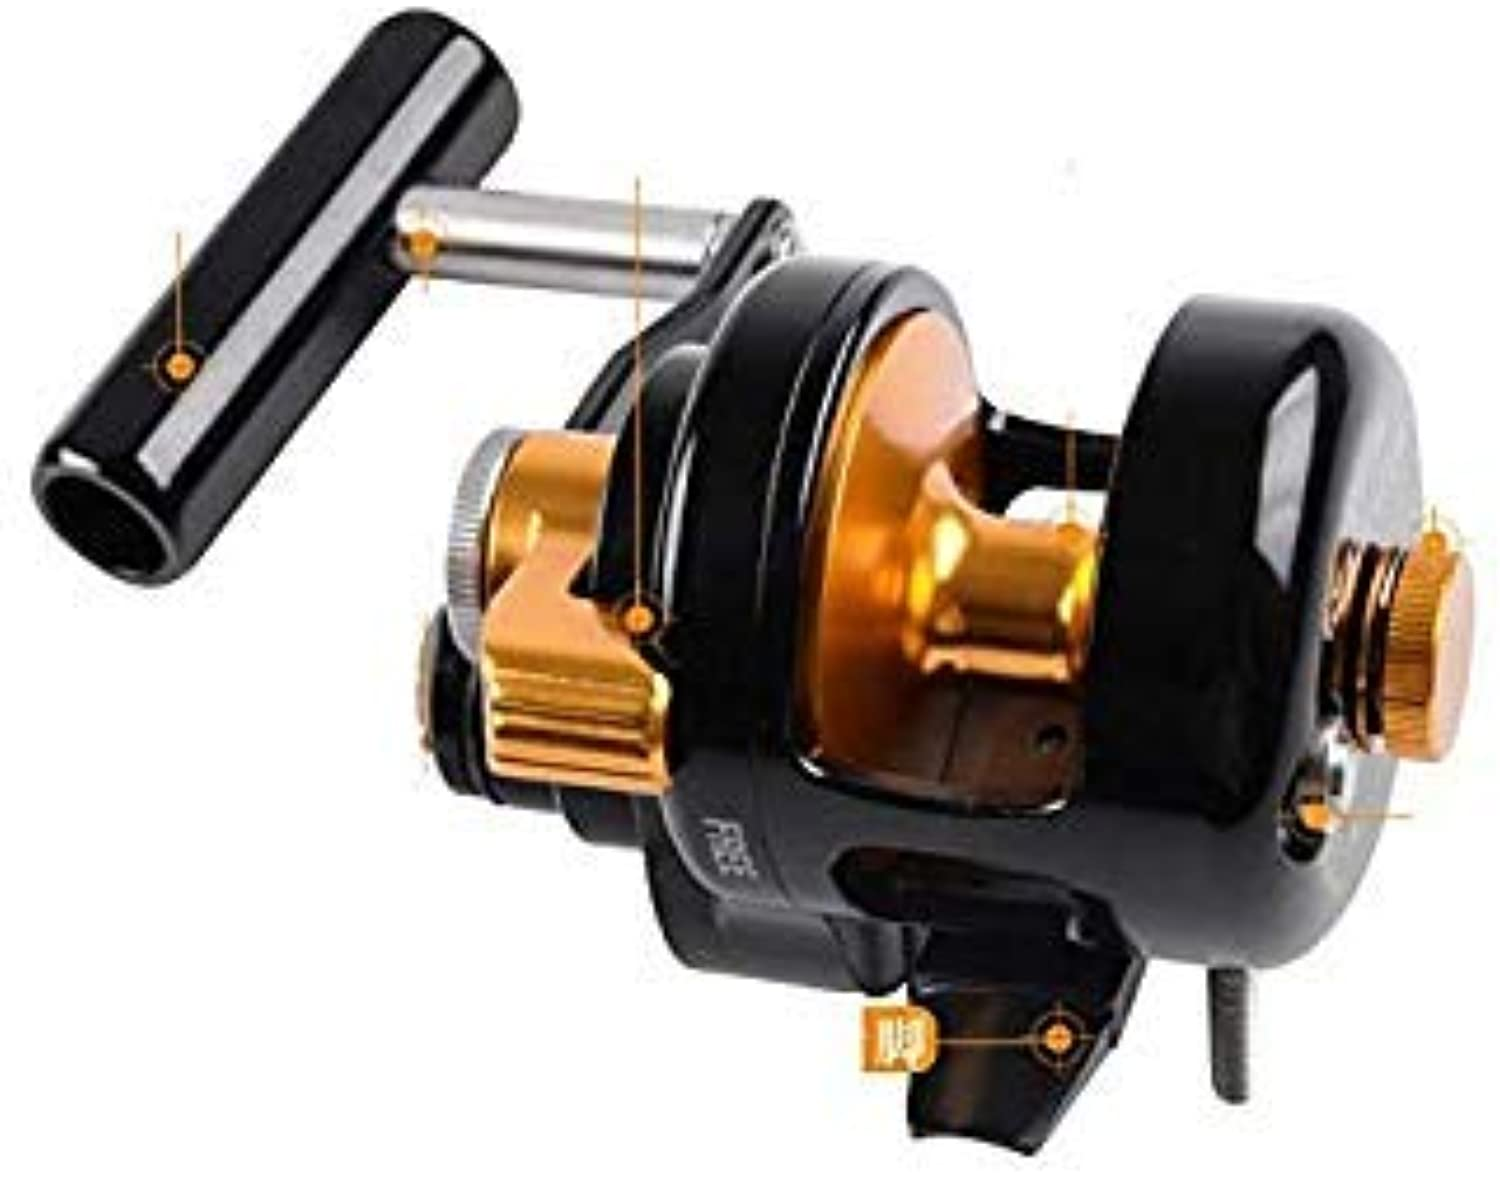 GEOPONICS 2018 WOEN New Sea Fishing Iron Plate Wheel 25 kg Fishing Force Trolling Reel Jigg400 Slow Shake Sea Fishing Wheel color Black Bearing Quantity 9 Spool Capacity 5000 Series